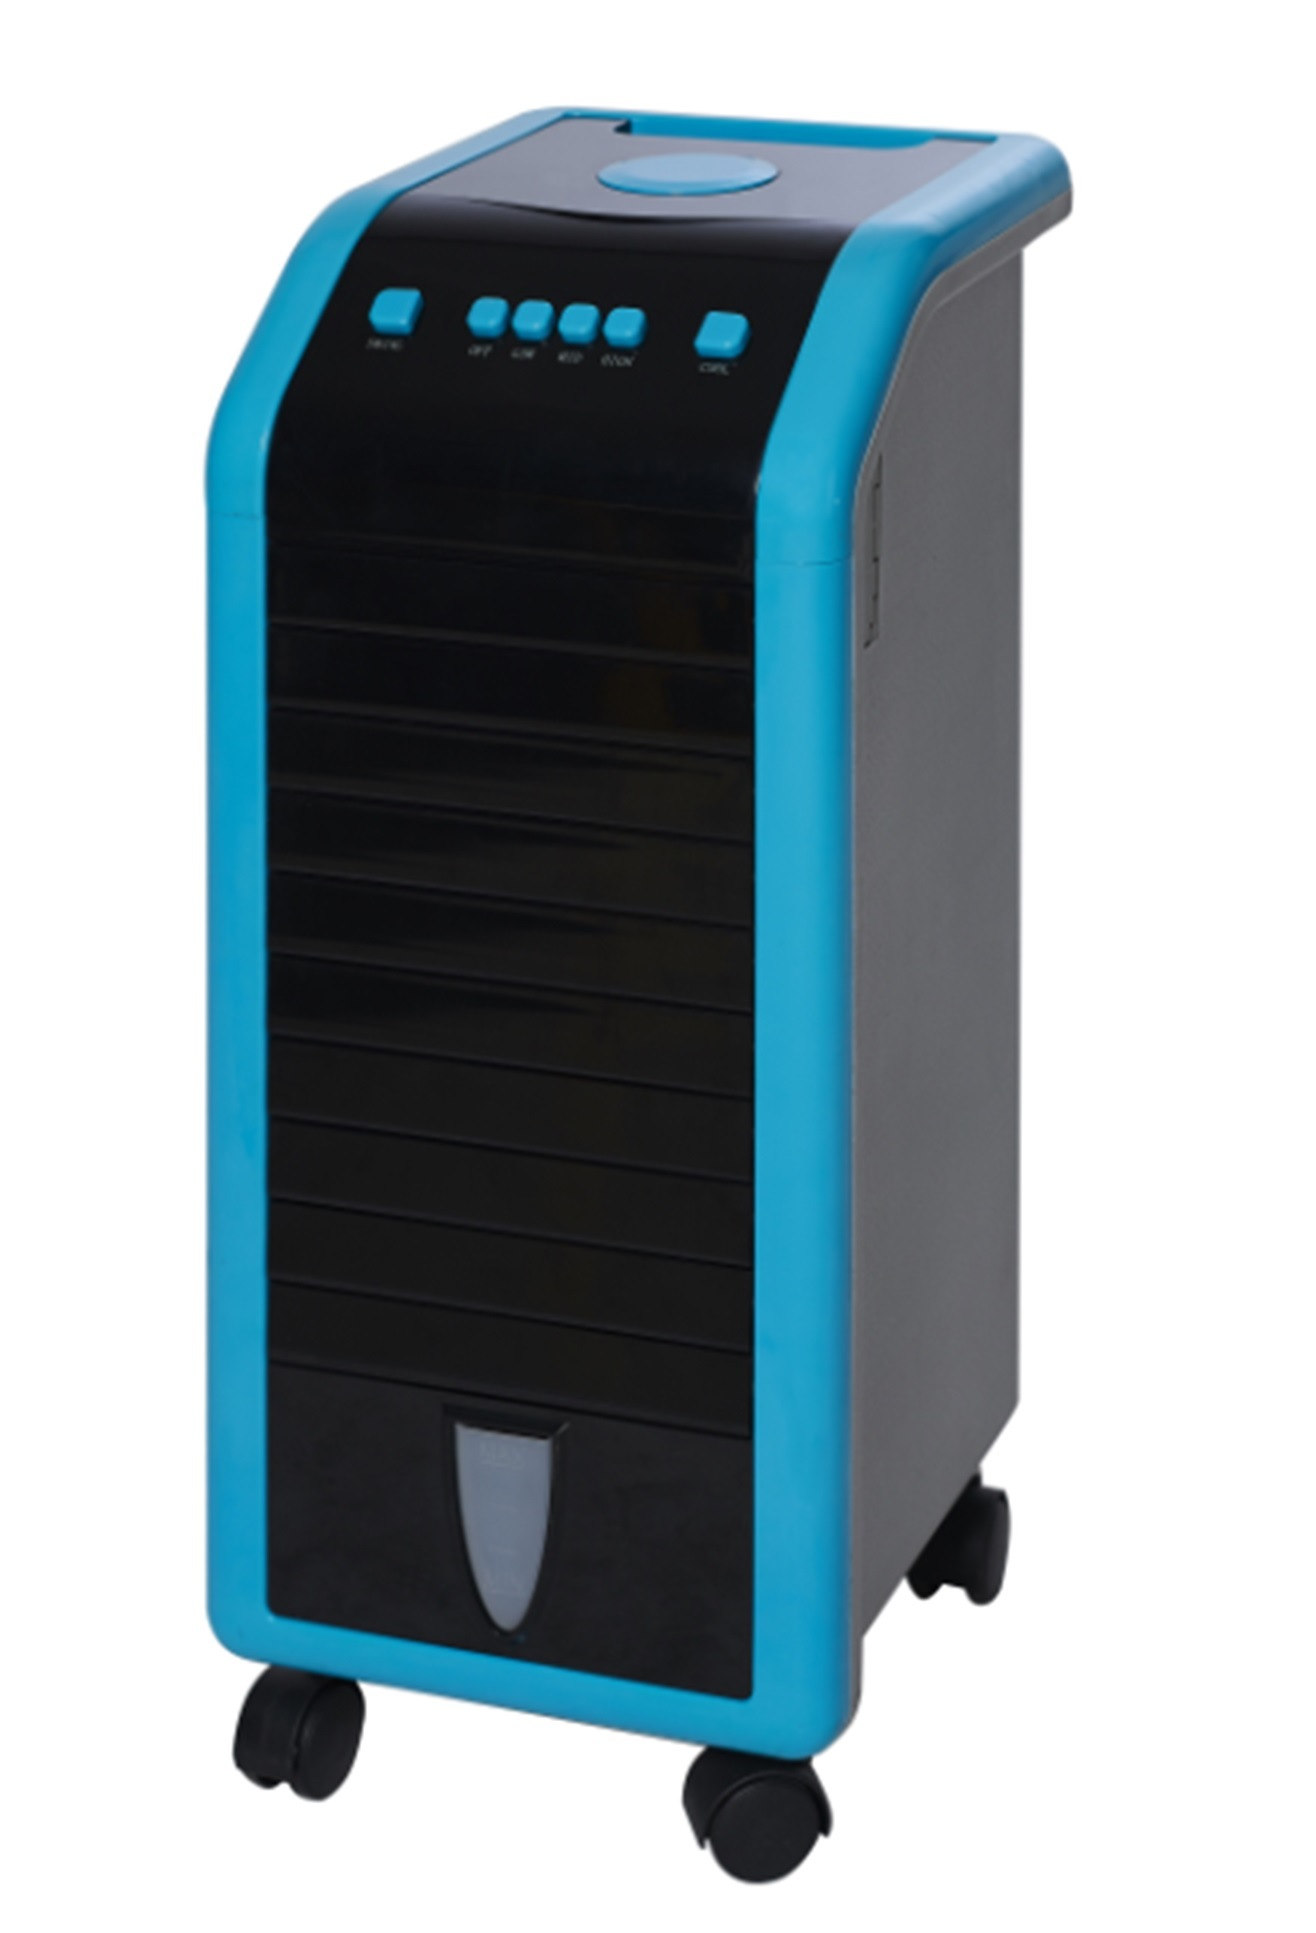 Air Cooler with Ice Pack Included and 3-Position Speed Adjustment